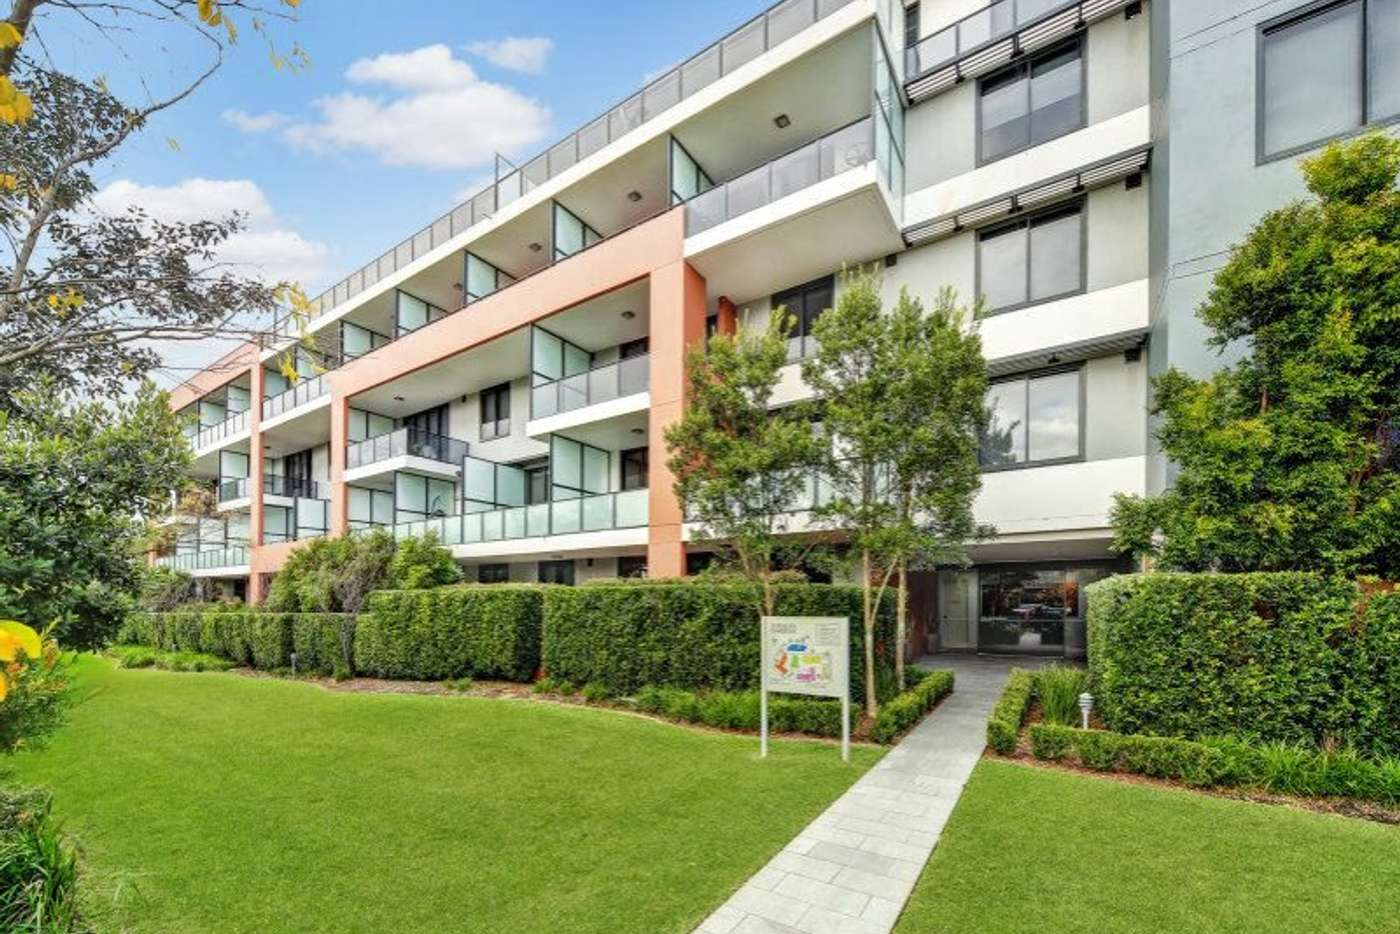 Main view of Homely unit listing, 513/17-19 Memorial Avenue, St Ives NSW 2075